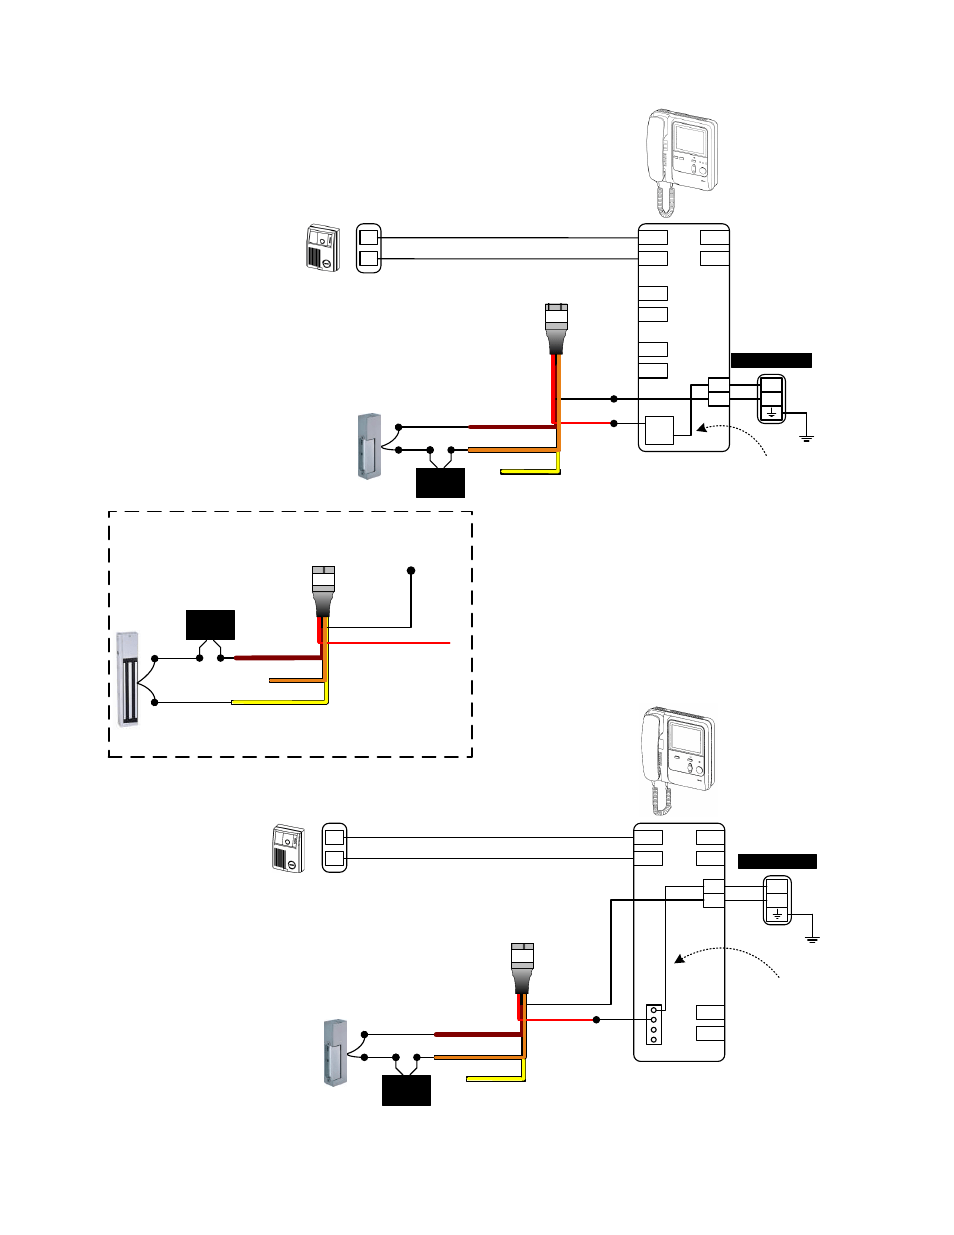 aiphone door release relay module ry 24l page2?resize\=665%2C861 wiring diagram hid edge solo 5 pin relay wiring diagram, led von duprin wiring diagram at eliteediting.co